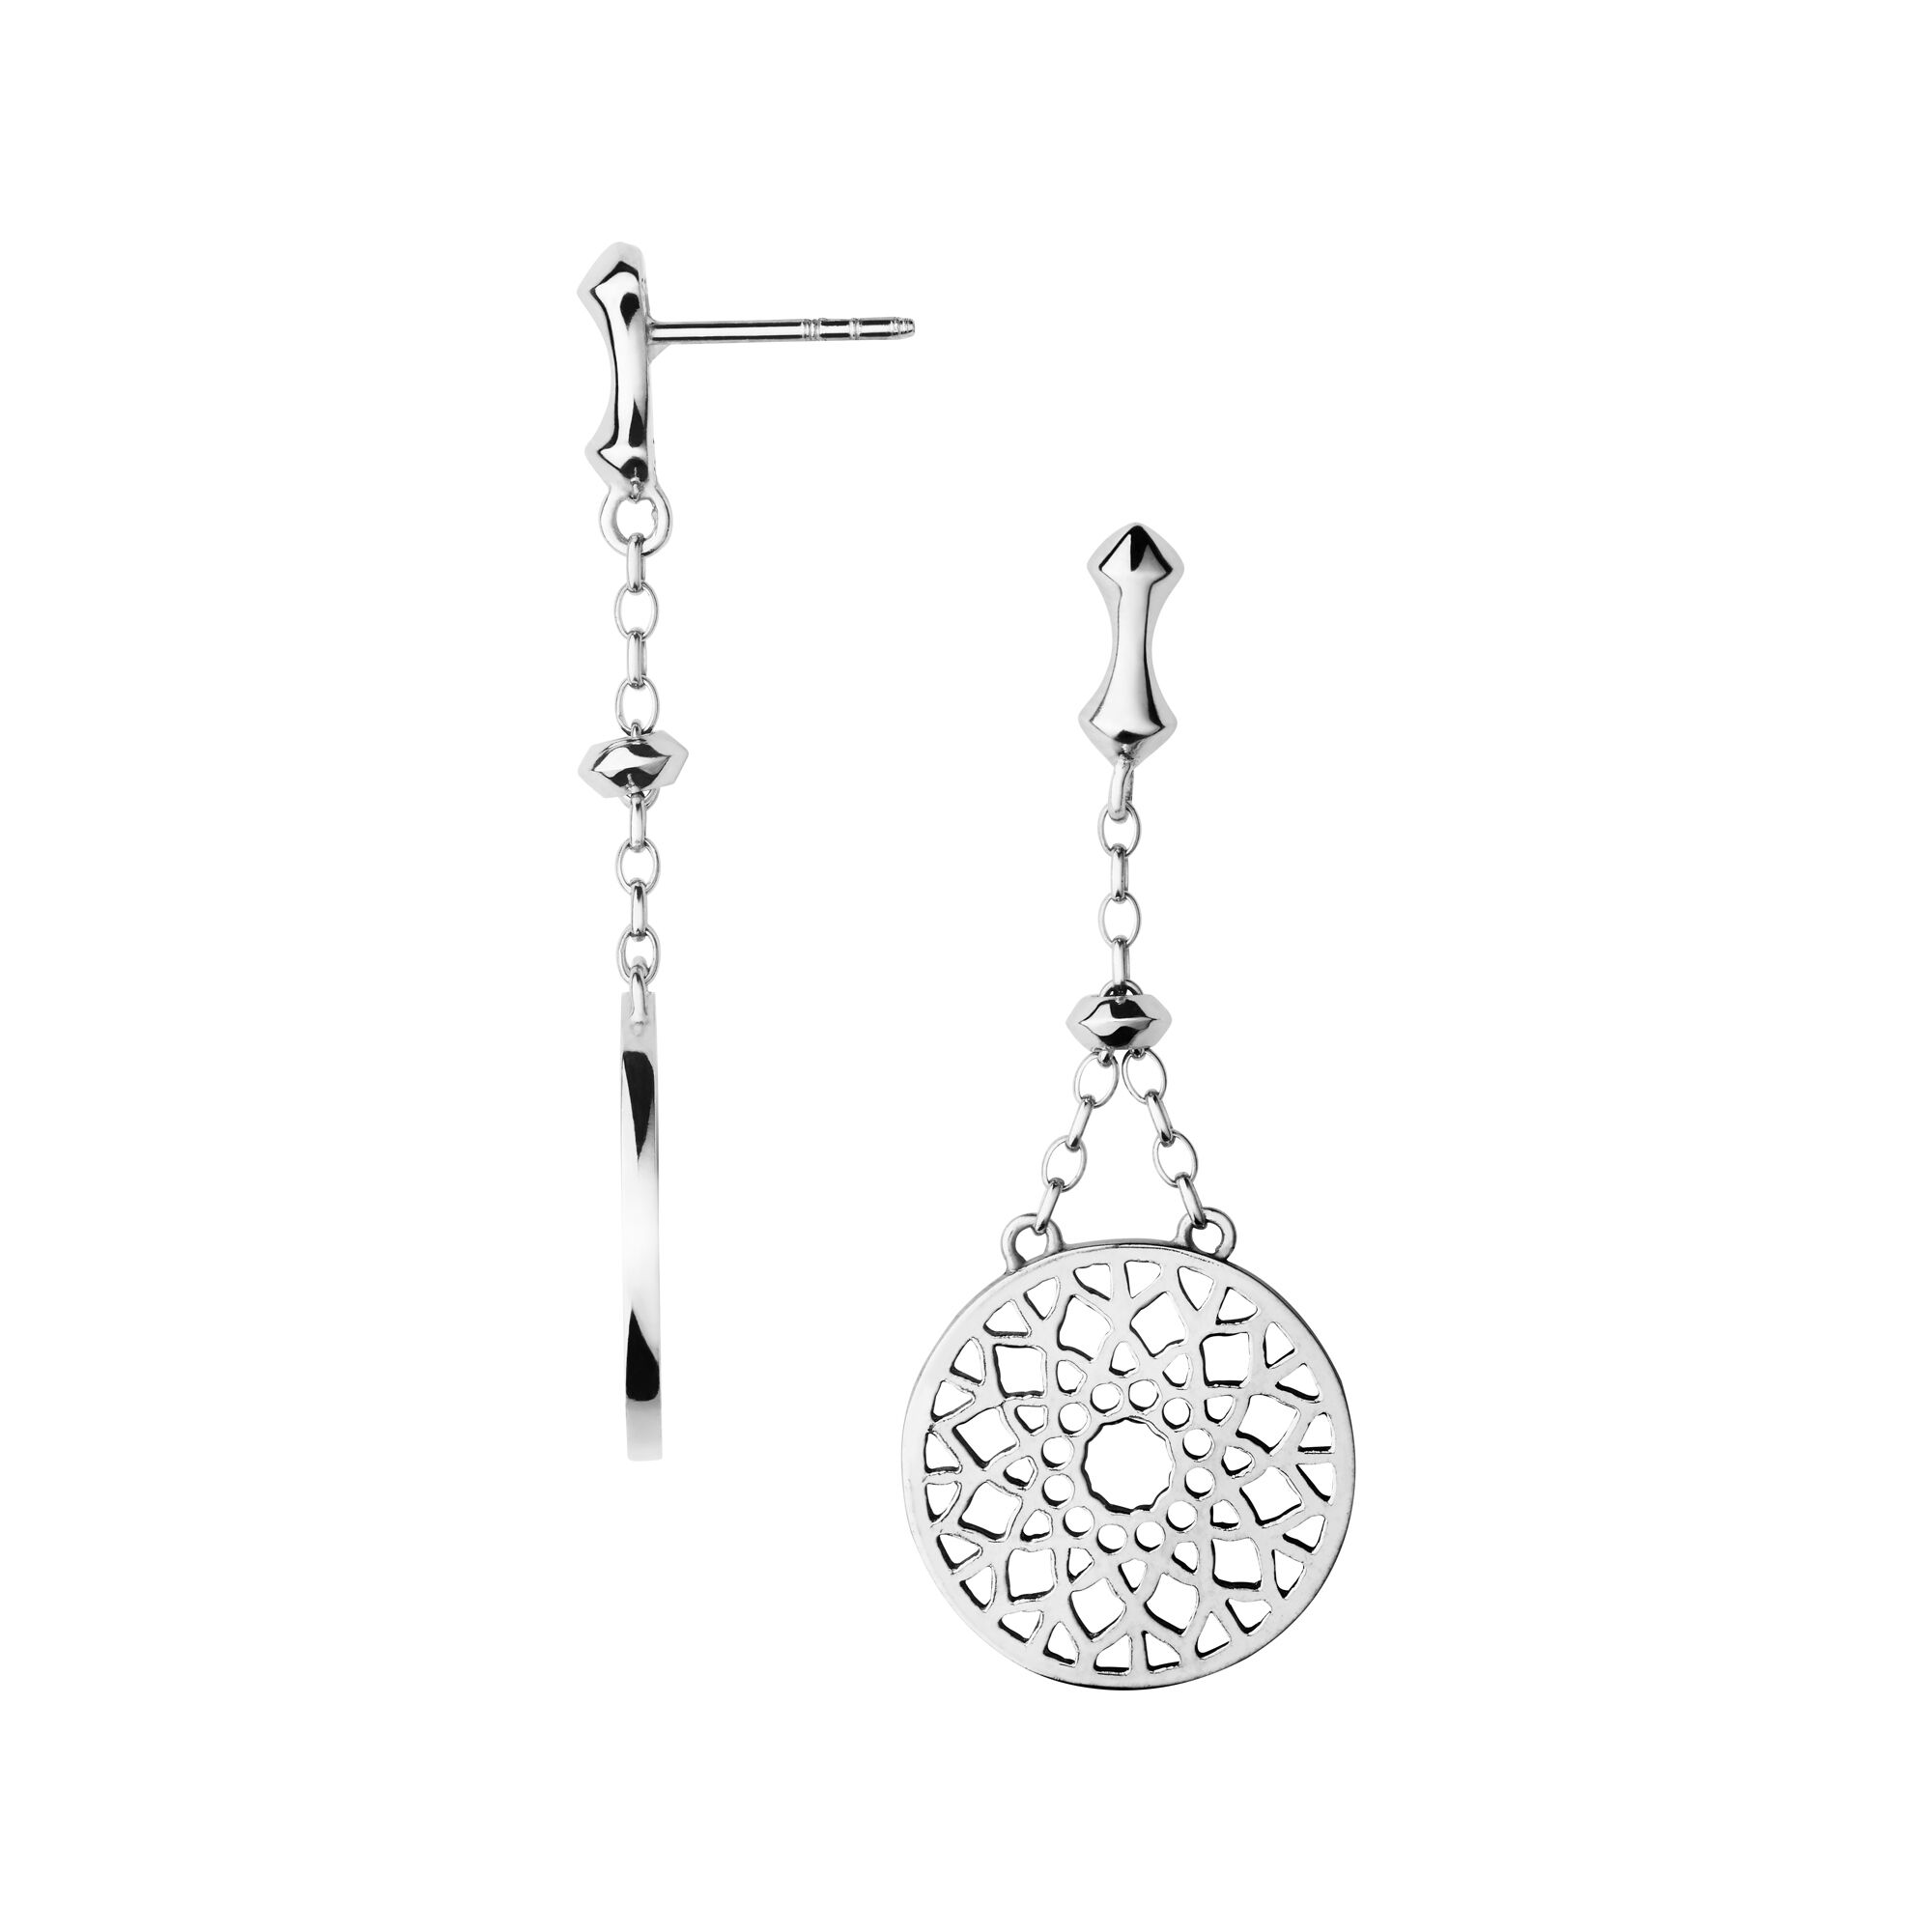 Timeless Sterling Silver Large Drop Earrings Hires